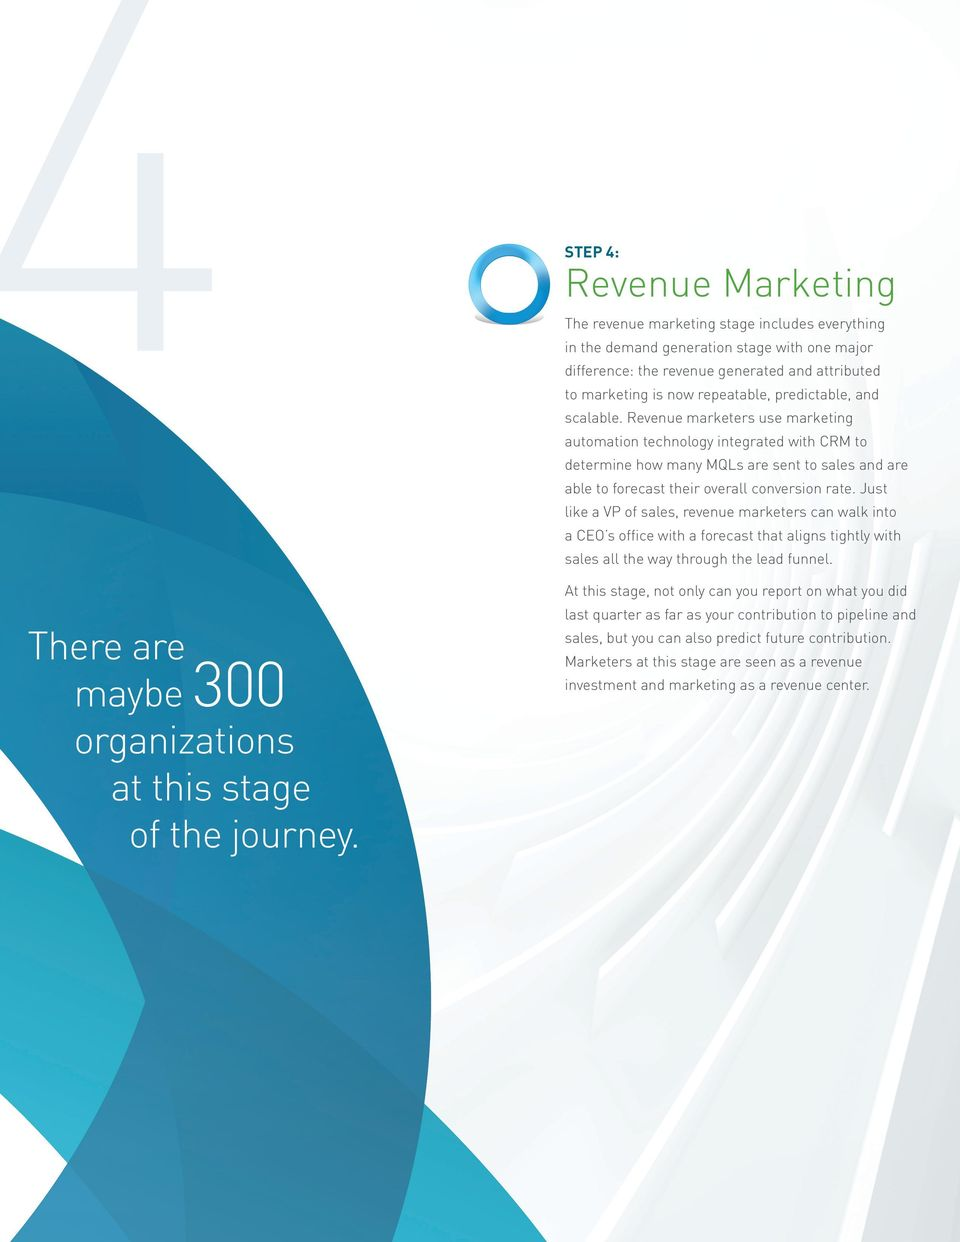 Revenue marketers use marketing automation technology integrated with CRM to determine how many MQLs are sent to sales and are able to forecast their overall conversion rate.